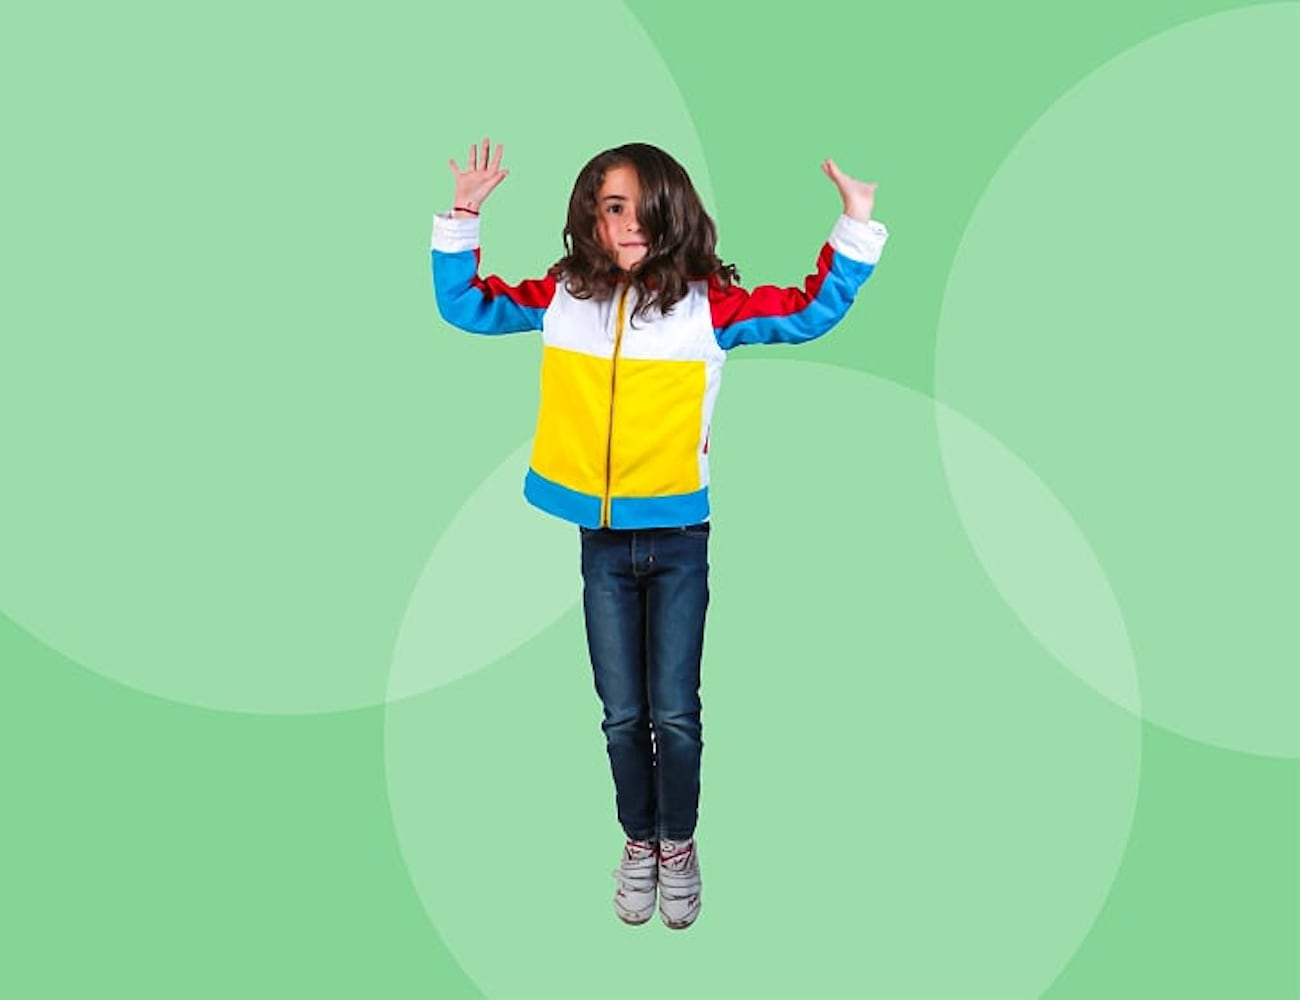 Wiggly Interactive Jacket for Kids